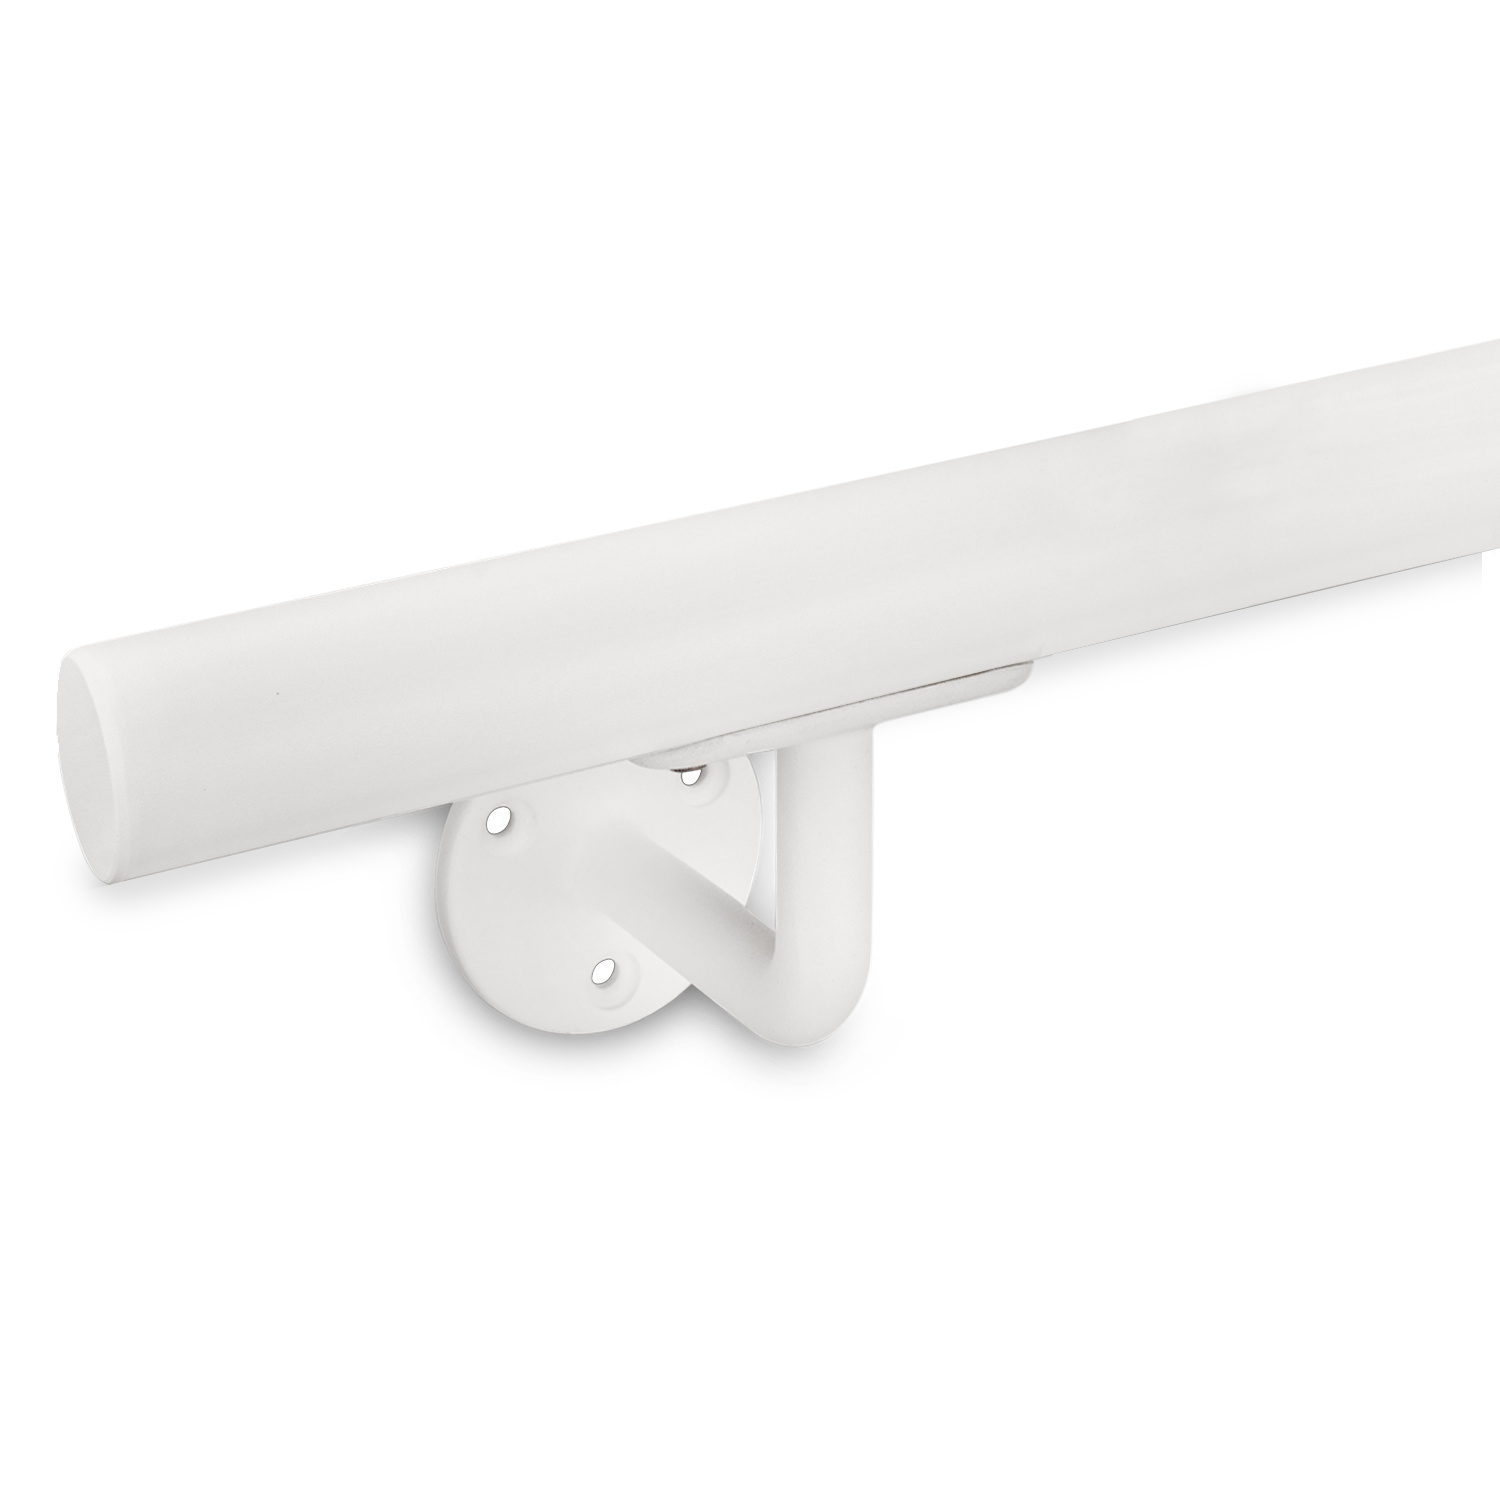 Witte trapleuning gecoat rond smal incl. dragers TYPE 1 -fijnstructuur poedercoating RAL 9010 mat wit